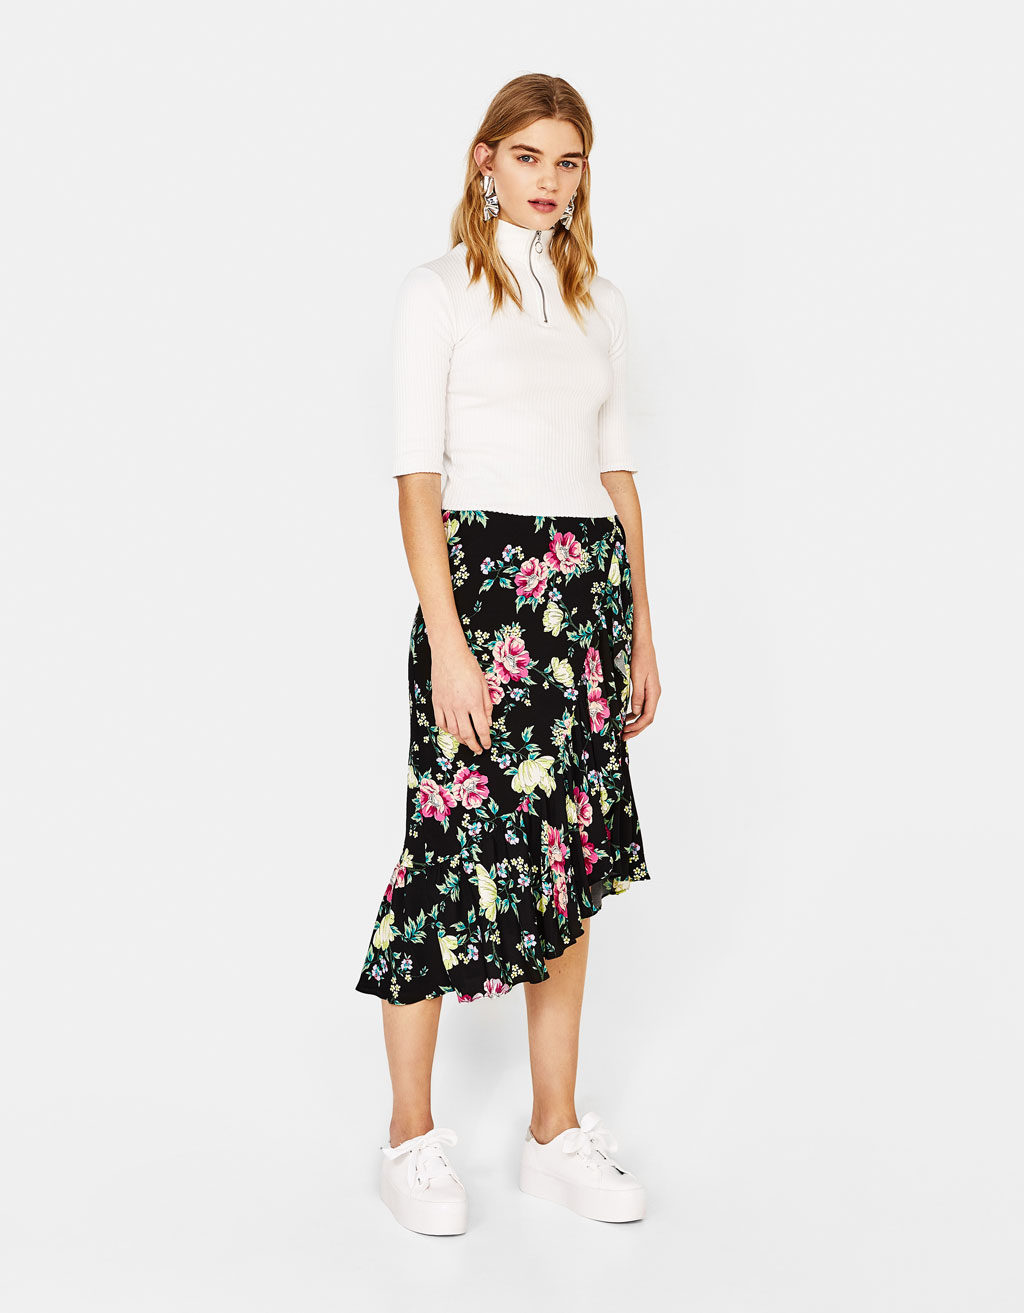 Asymmetric skirt with floral print